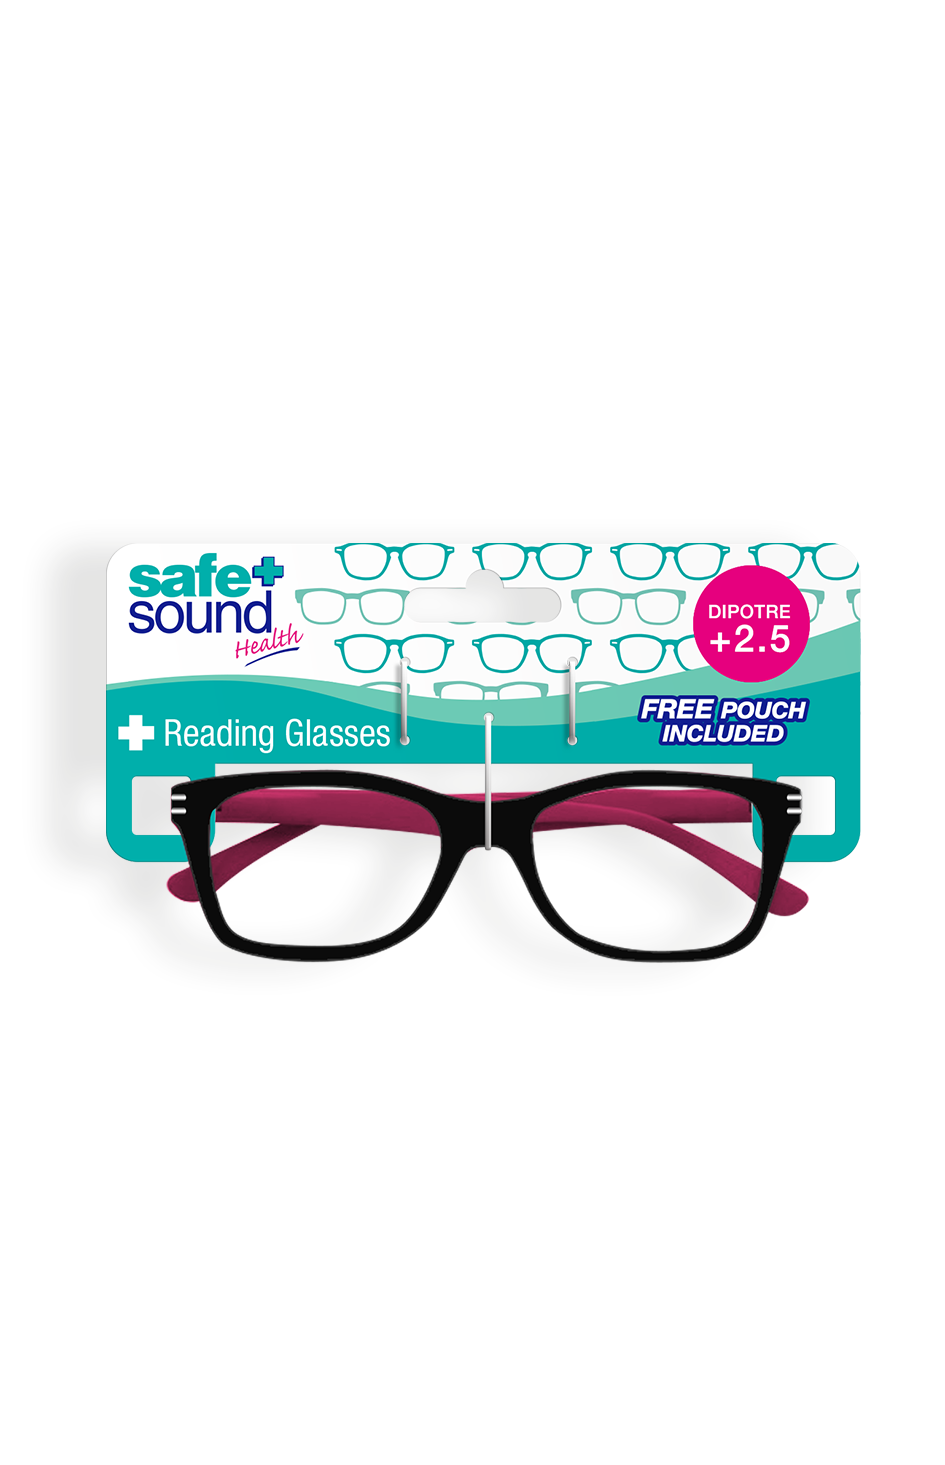 Safe and Sound Health Two-Tone Matt Black Reading Glasses 2.5 Dioptre